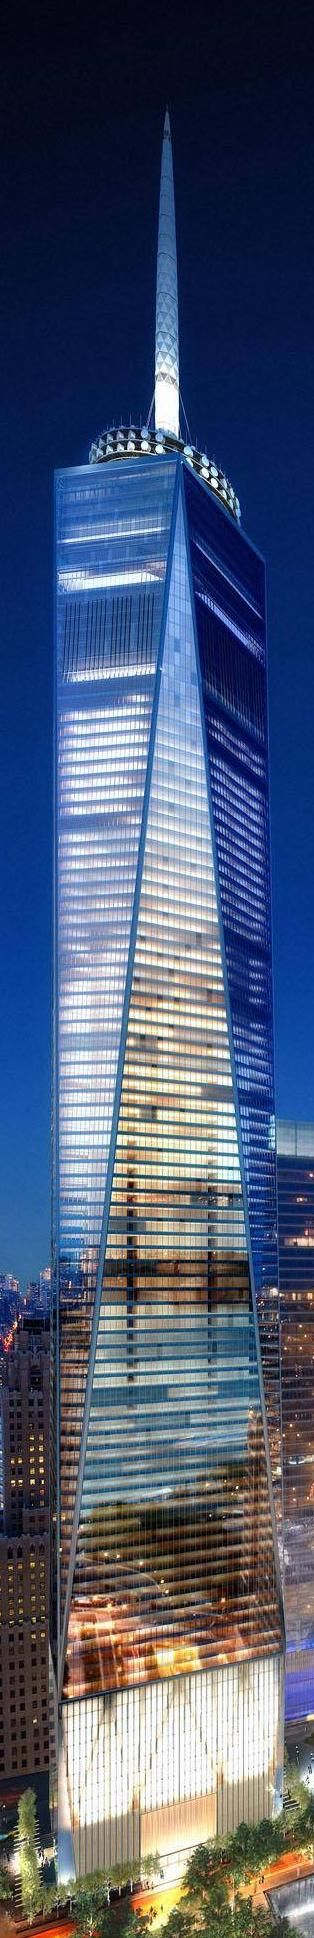 NEW YORK  Rising from the ashes! One World Trade Center 1776ft.